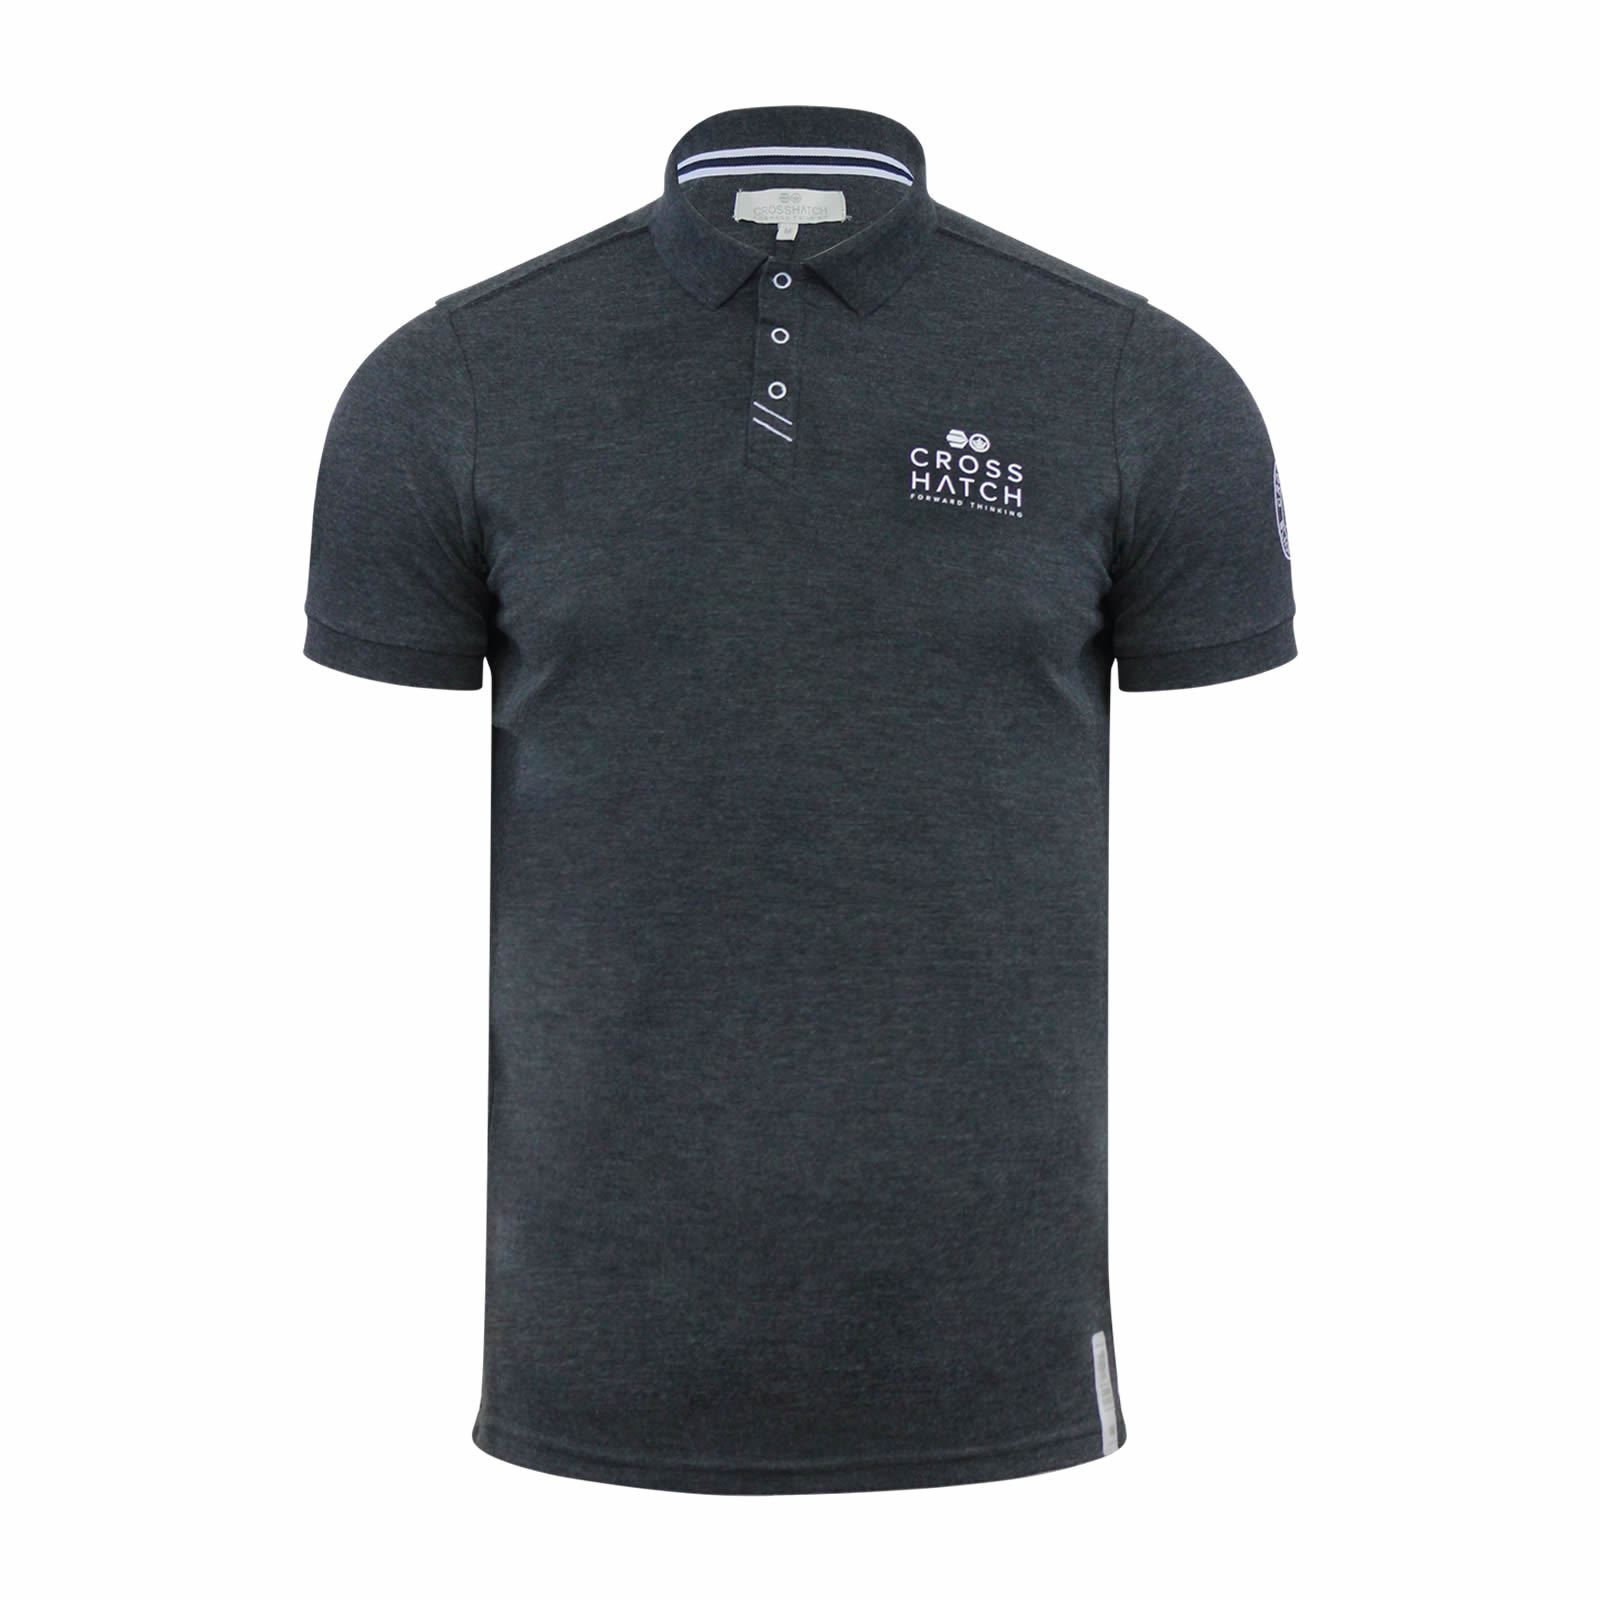 Crosshatch-Mens-Polo-T-Shirt-Pique-Polo-Cotton-Collared-Short-Sleeve-T-Shirt thumbnail 66